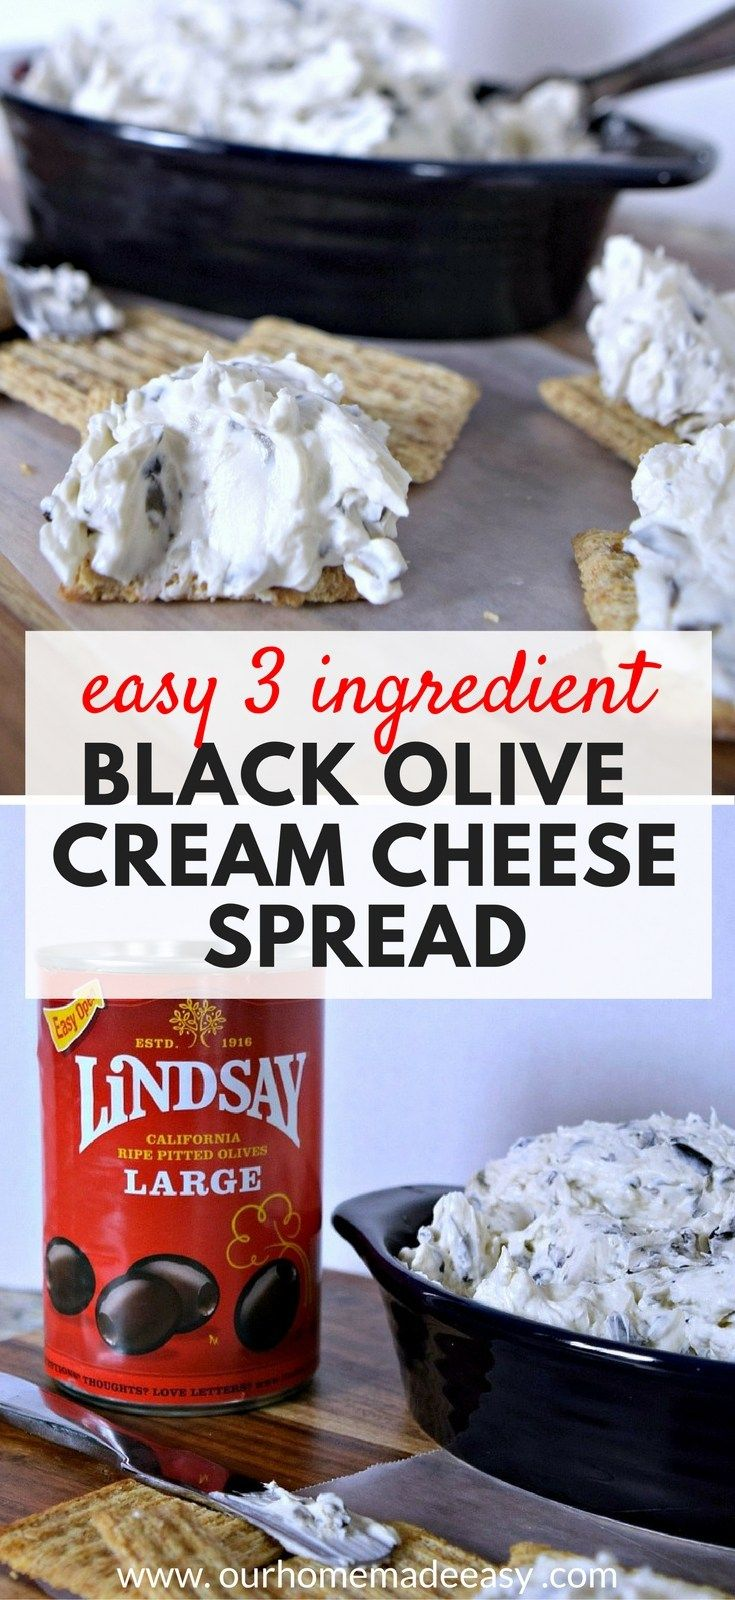 Make this easy appetizer with only 3 ingredients! Black Olive Cream Cheese Dip #sponsored